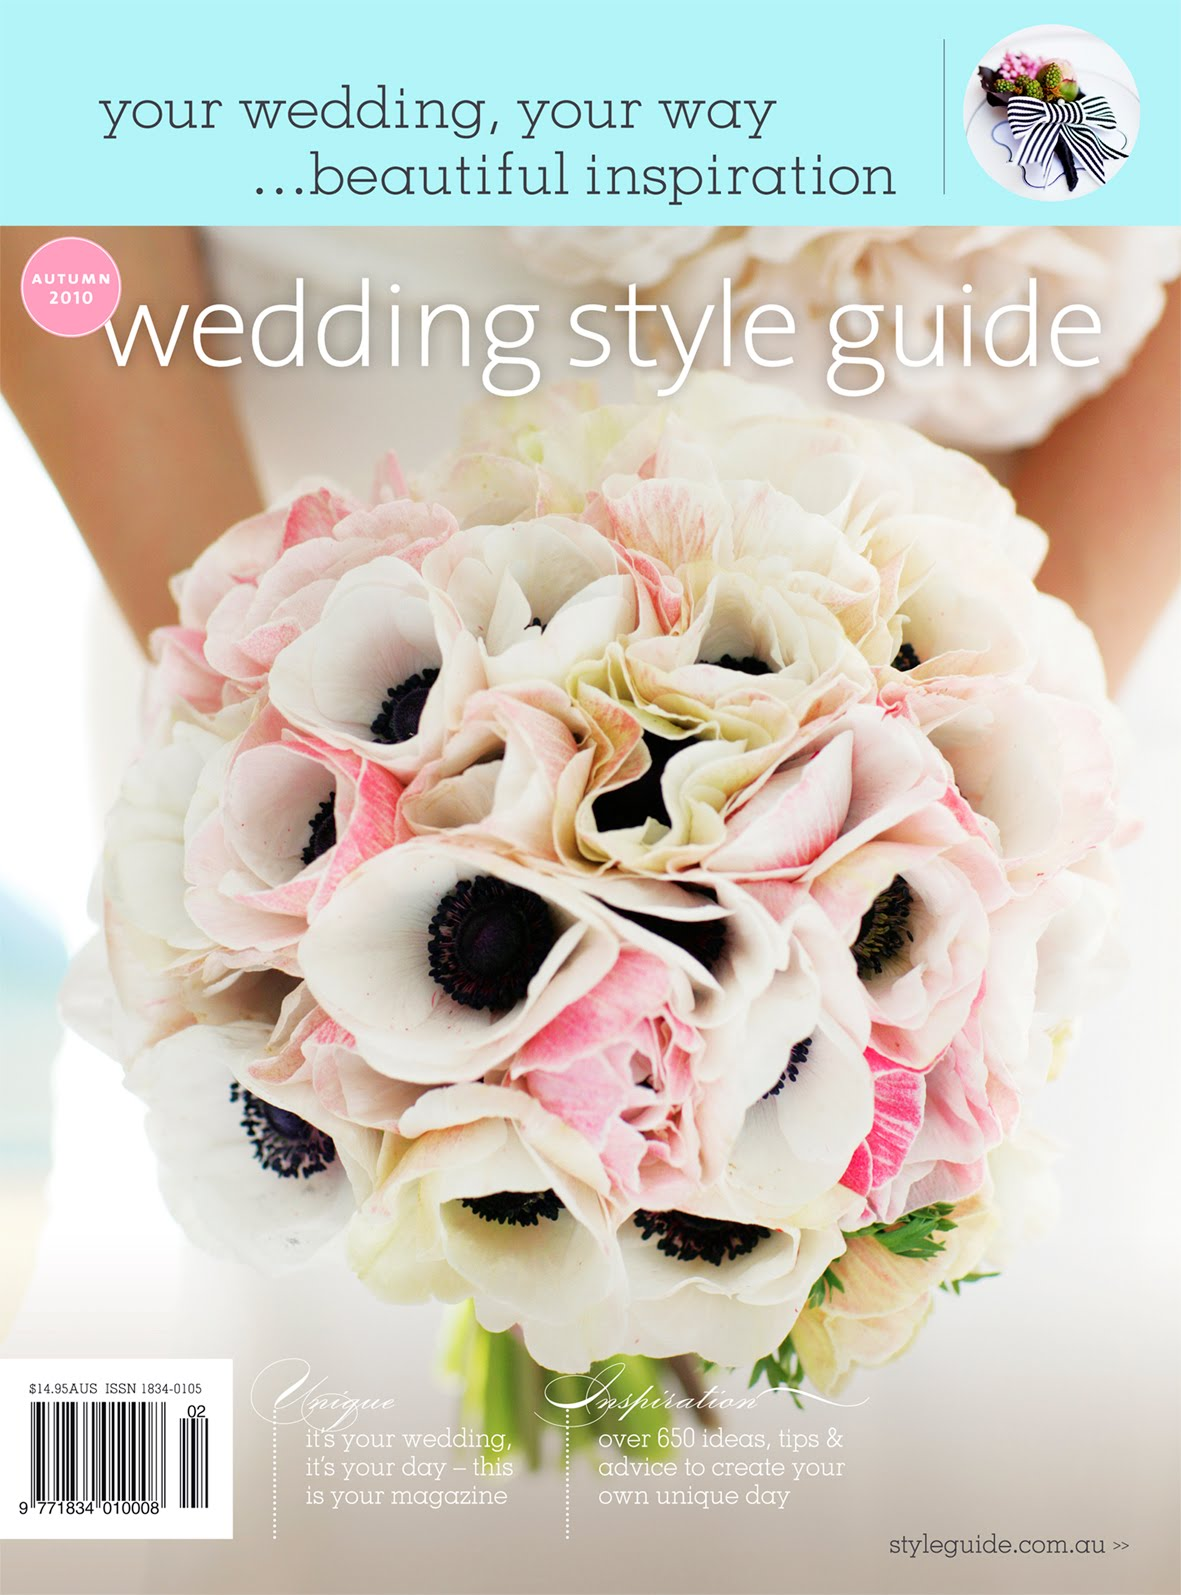 wedding style guide Out Now March 2010